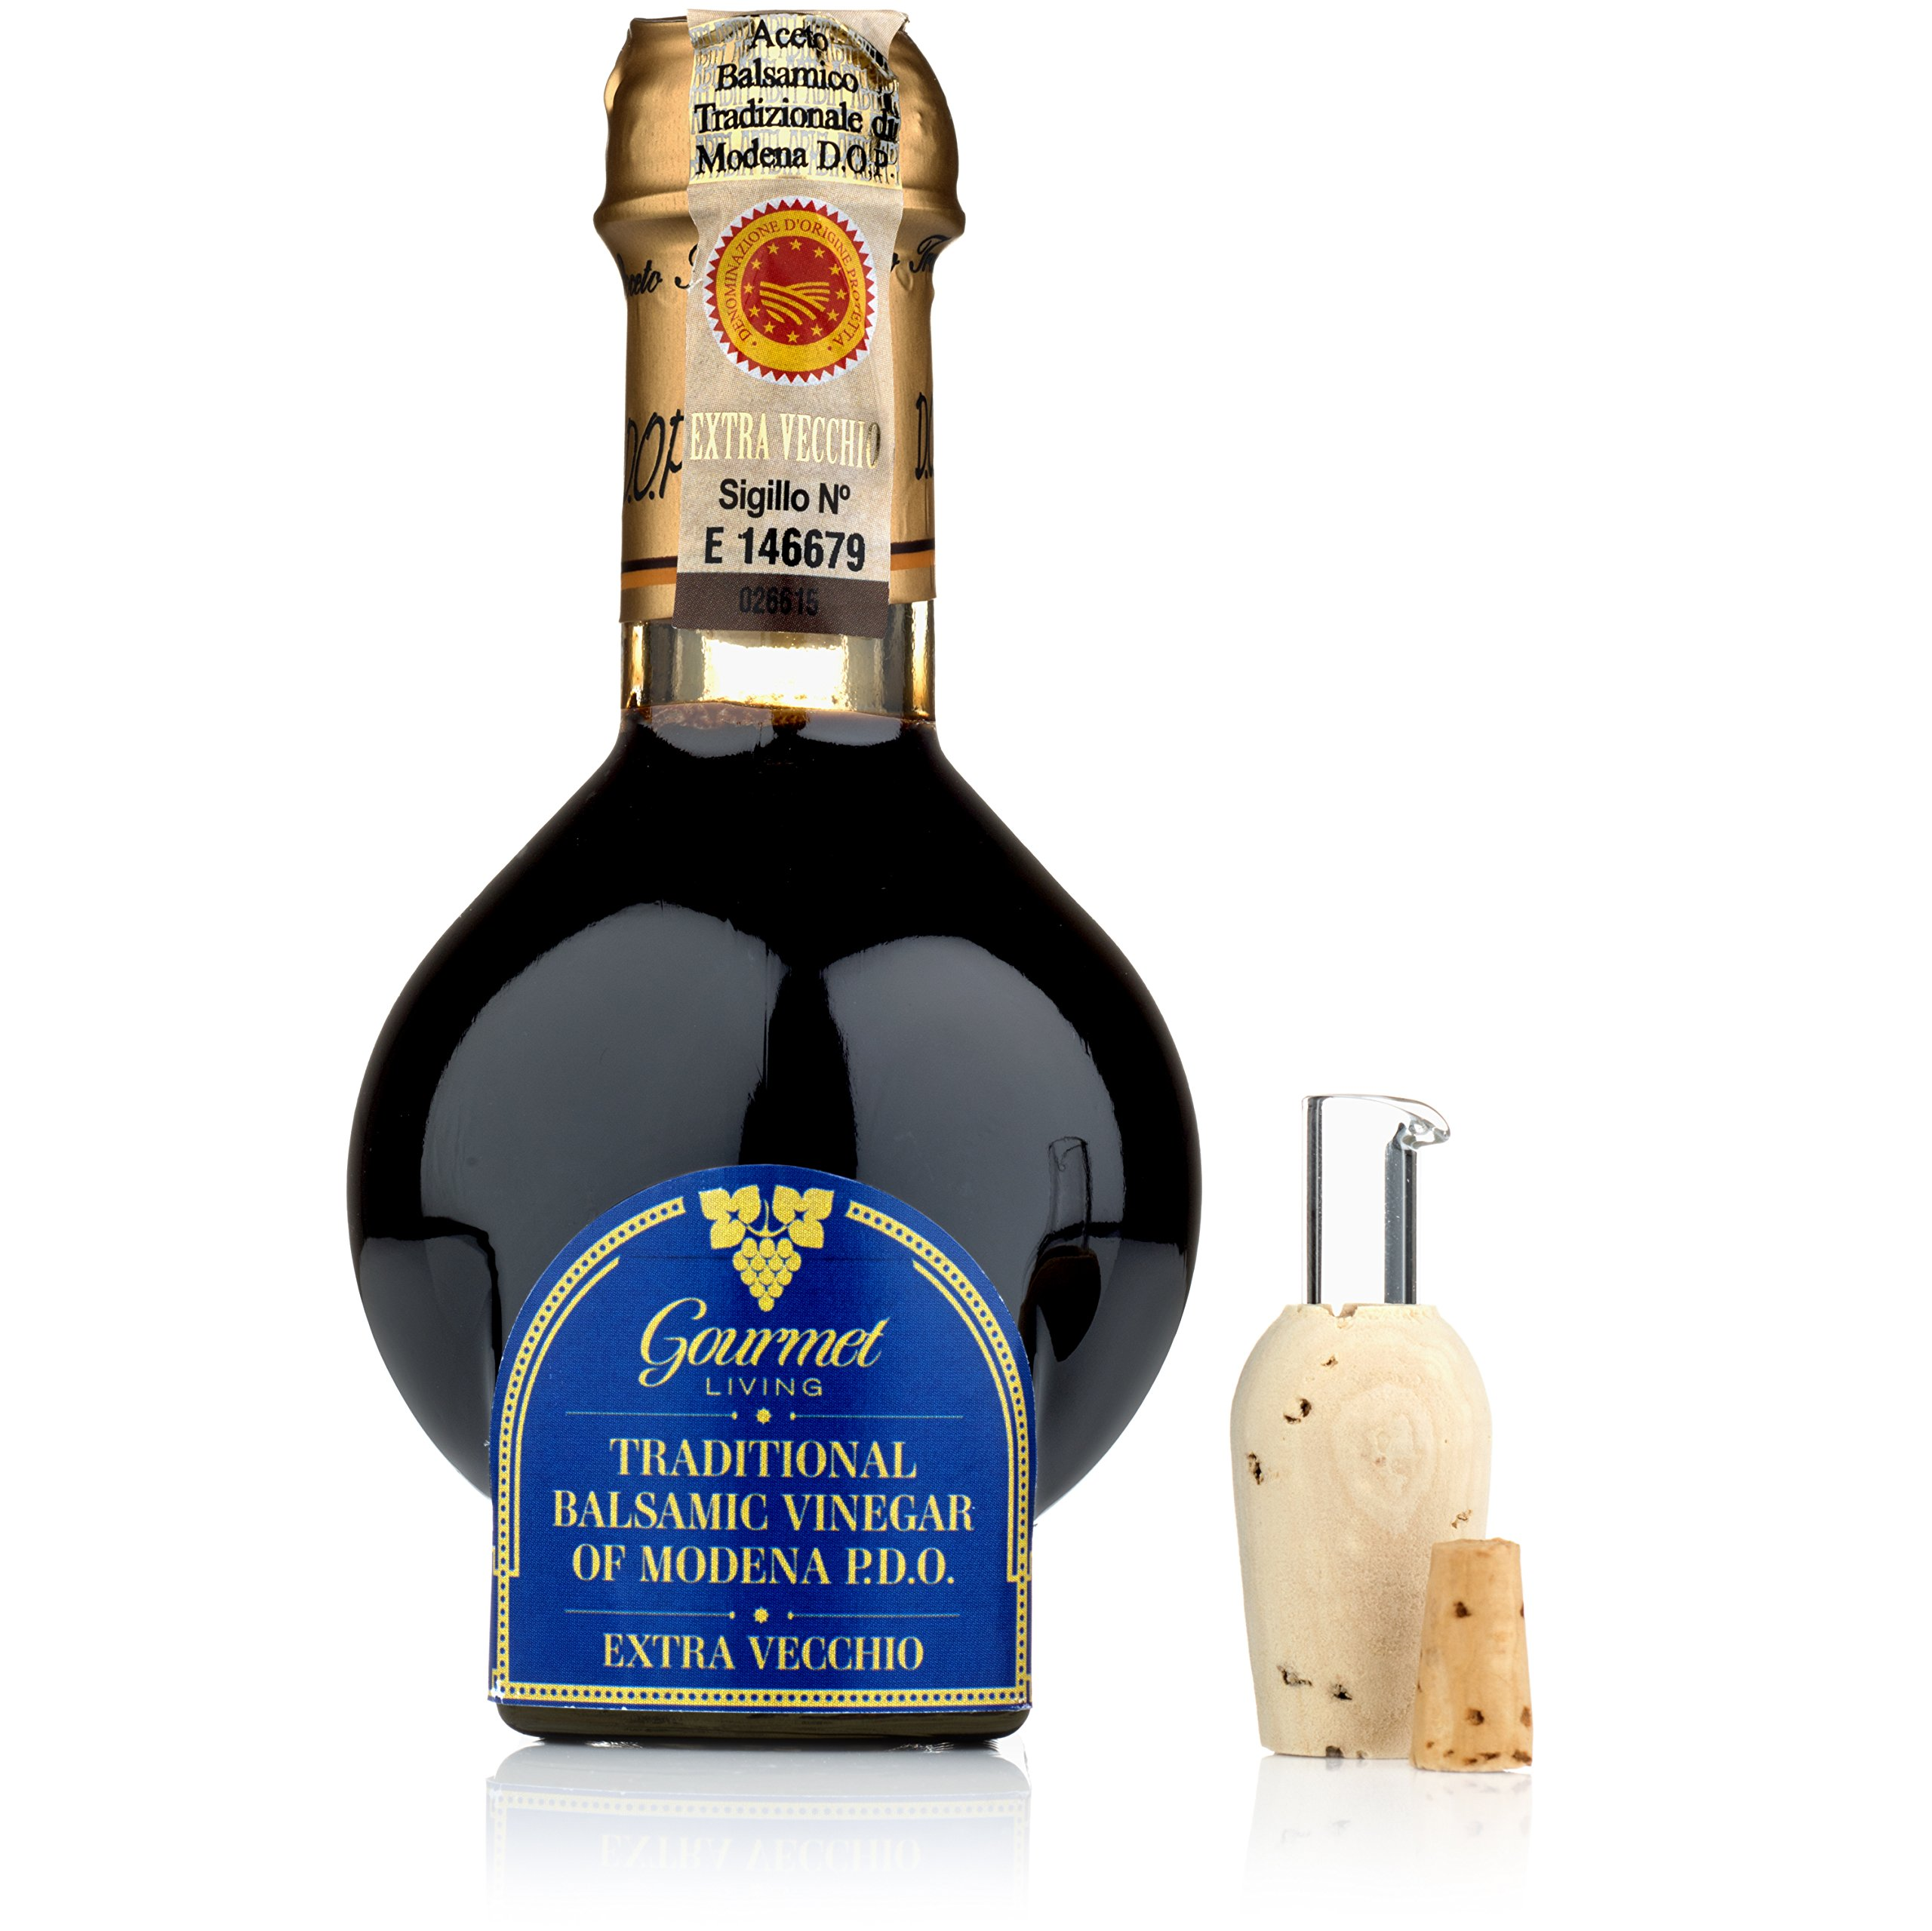 Traditional Balsamic Vinegar DOP 25 Years | 100 ml Barrel-aged PDO Certified Extravecchio Balsamico from Modena, Italy